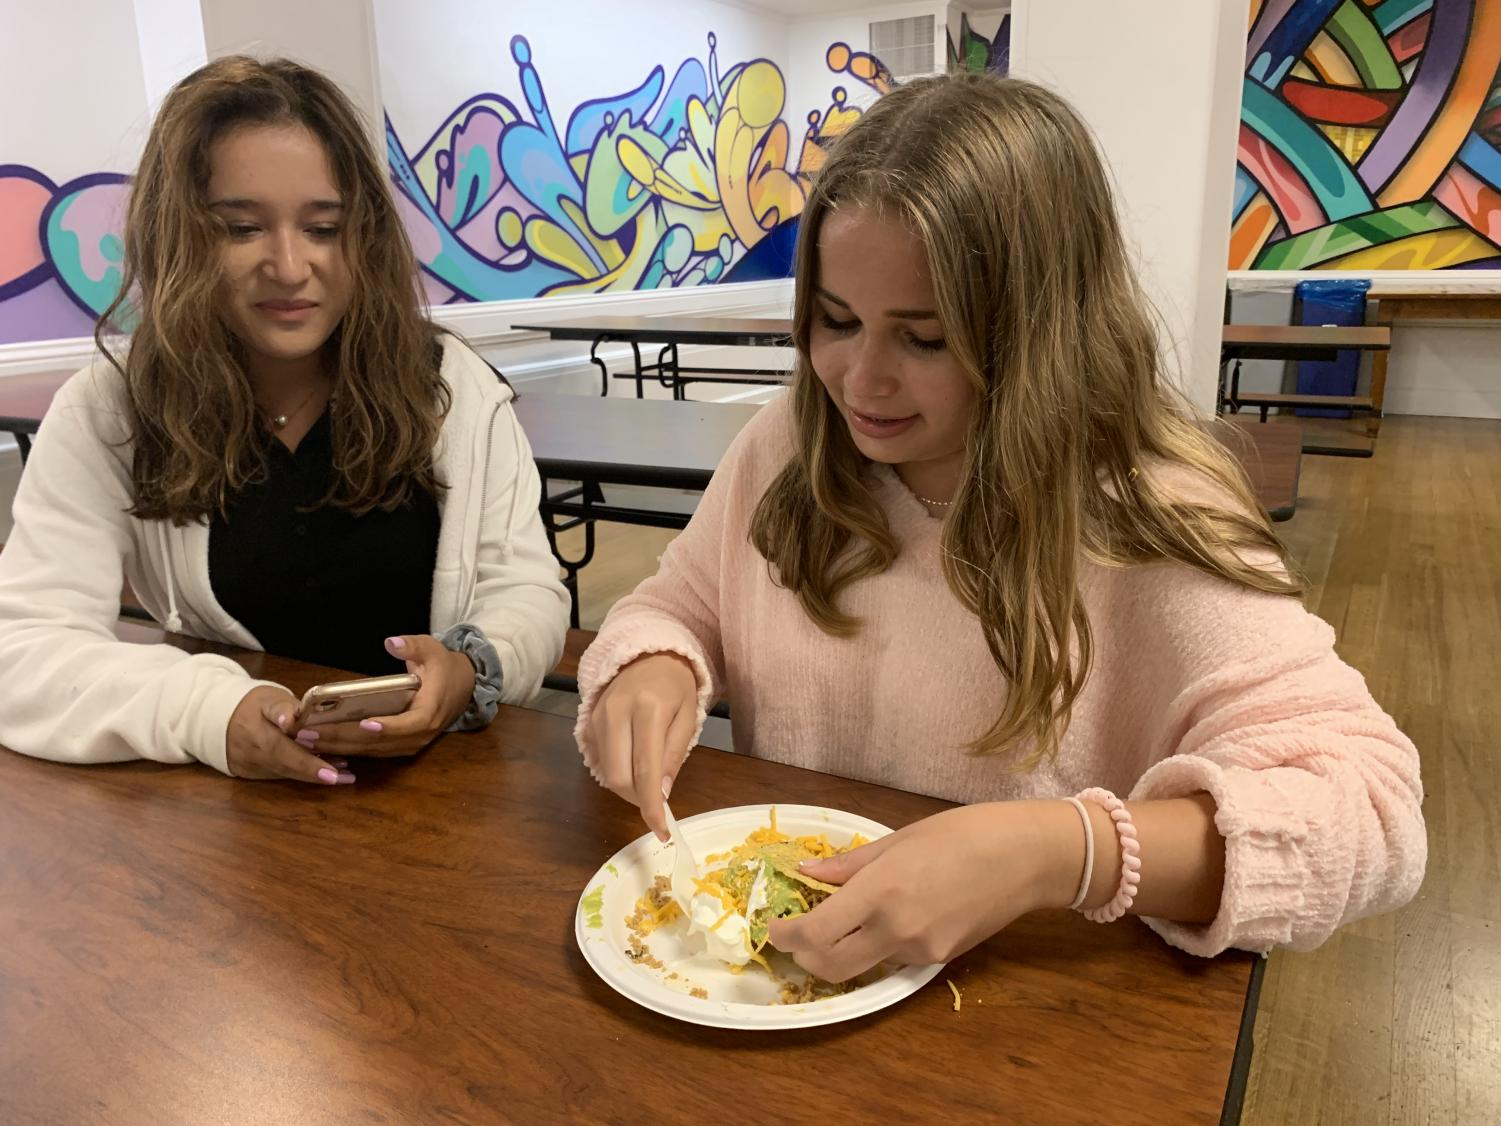 Sophomores Sloane Riley and Mira Chawla eat lunch during the second lunch period at Convent. The modified lunch schedule allows for two lunch periods based on the location of a student's first afternoon class.